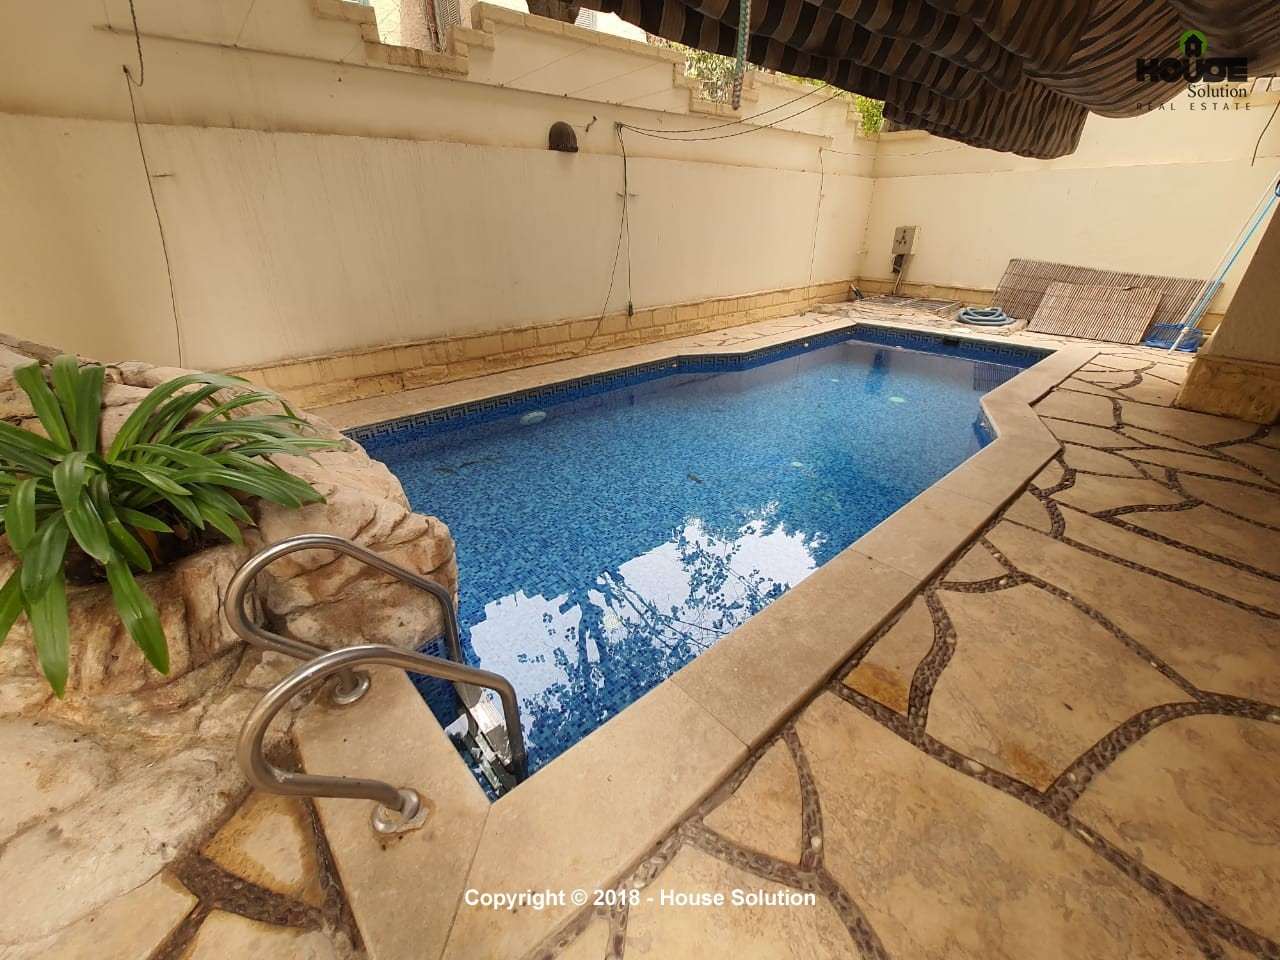 Luxurious Ground Floor With Swimming Pool For Rent In Sarayat El Maadi - 4885 Featured Image